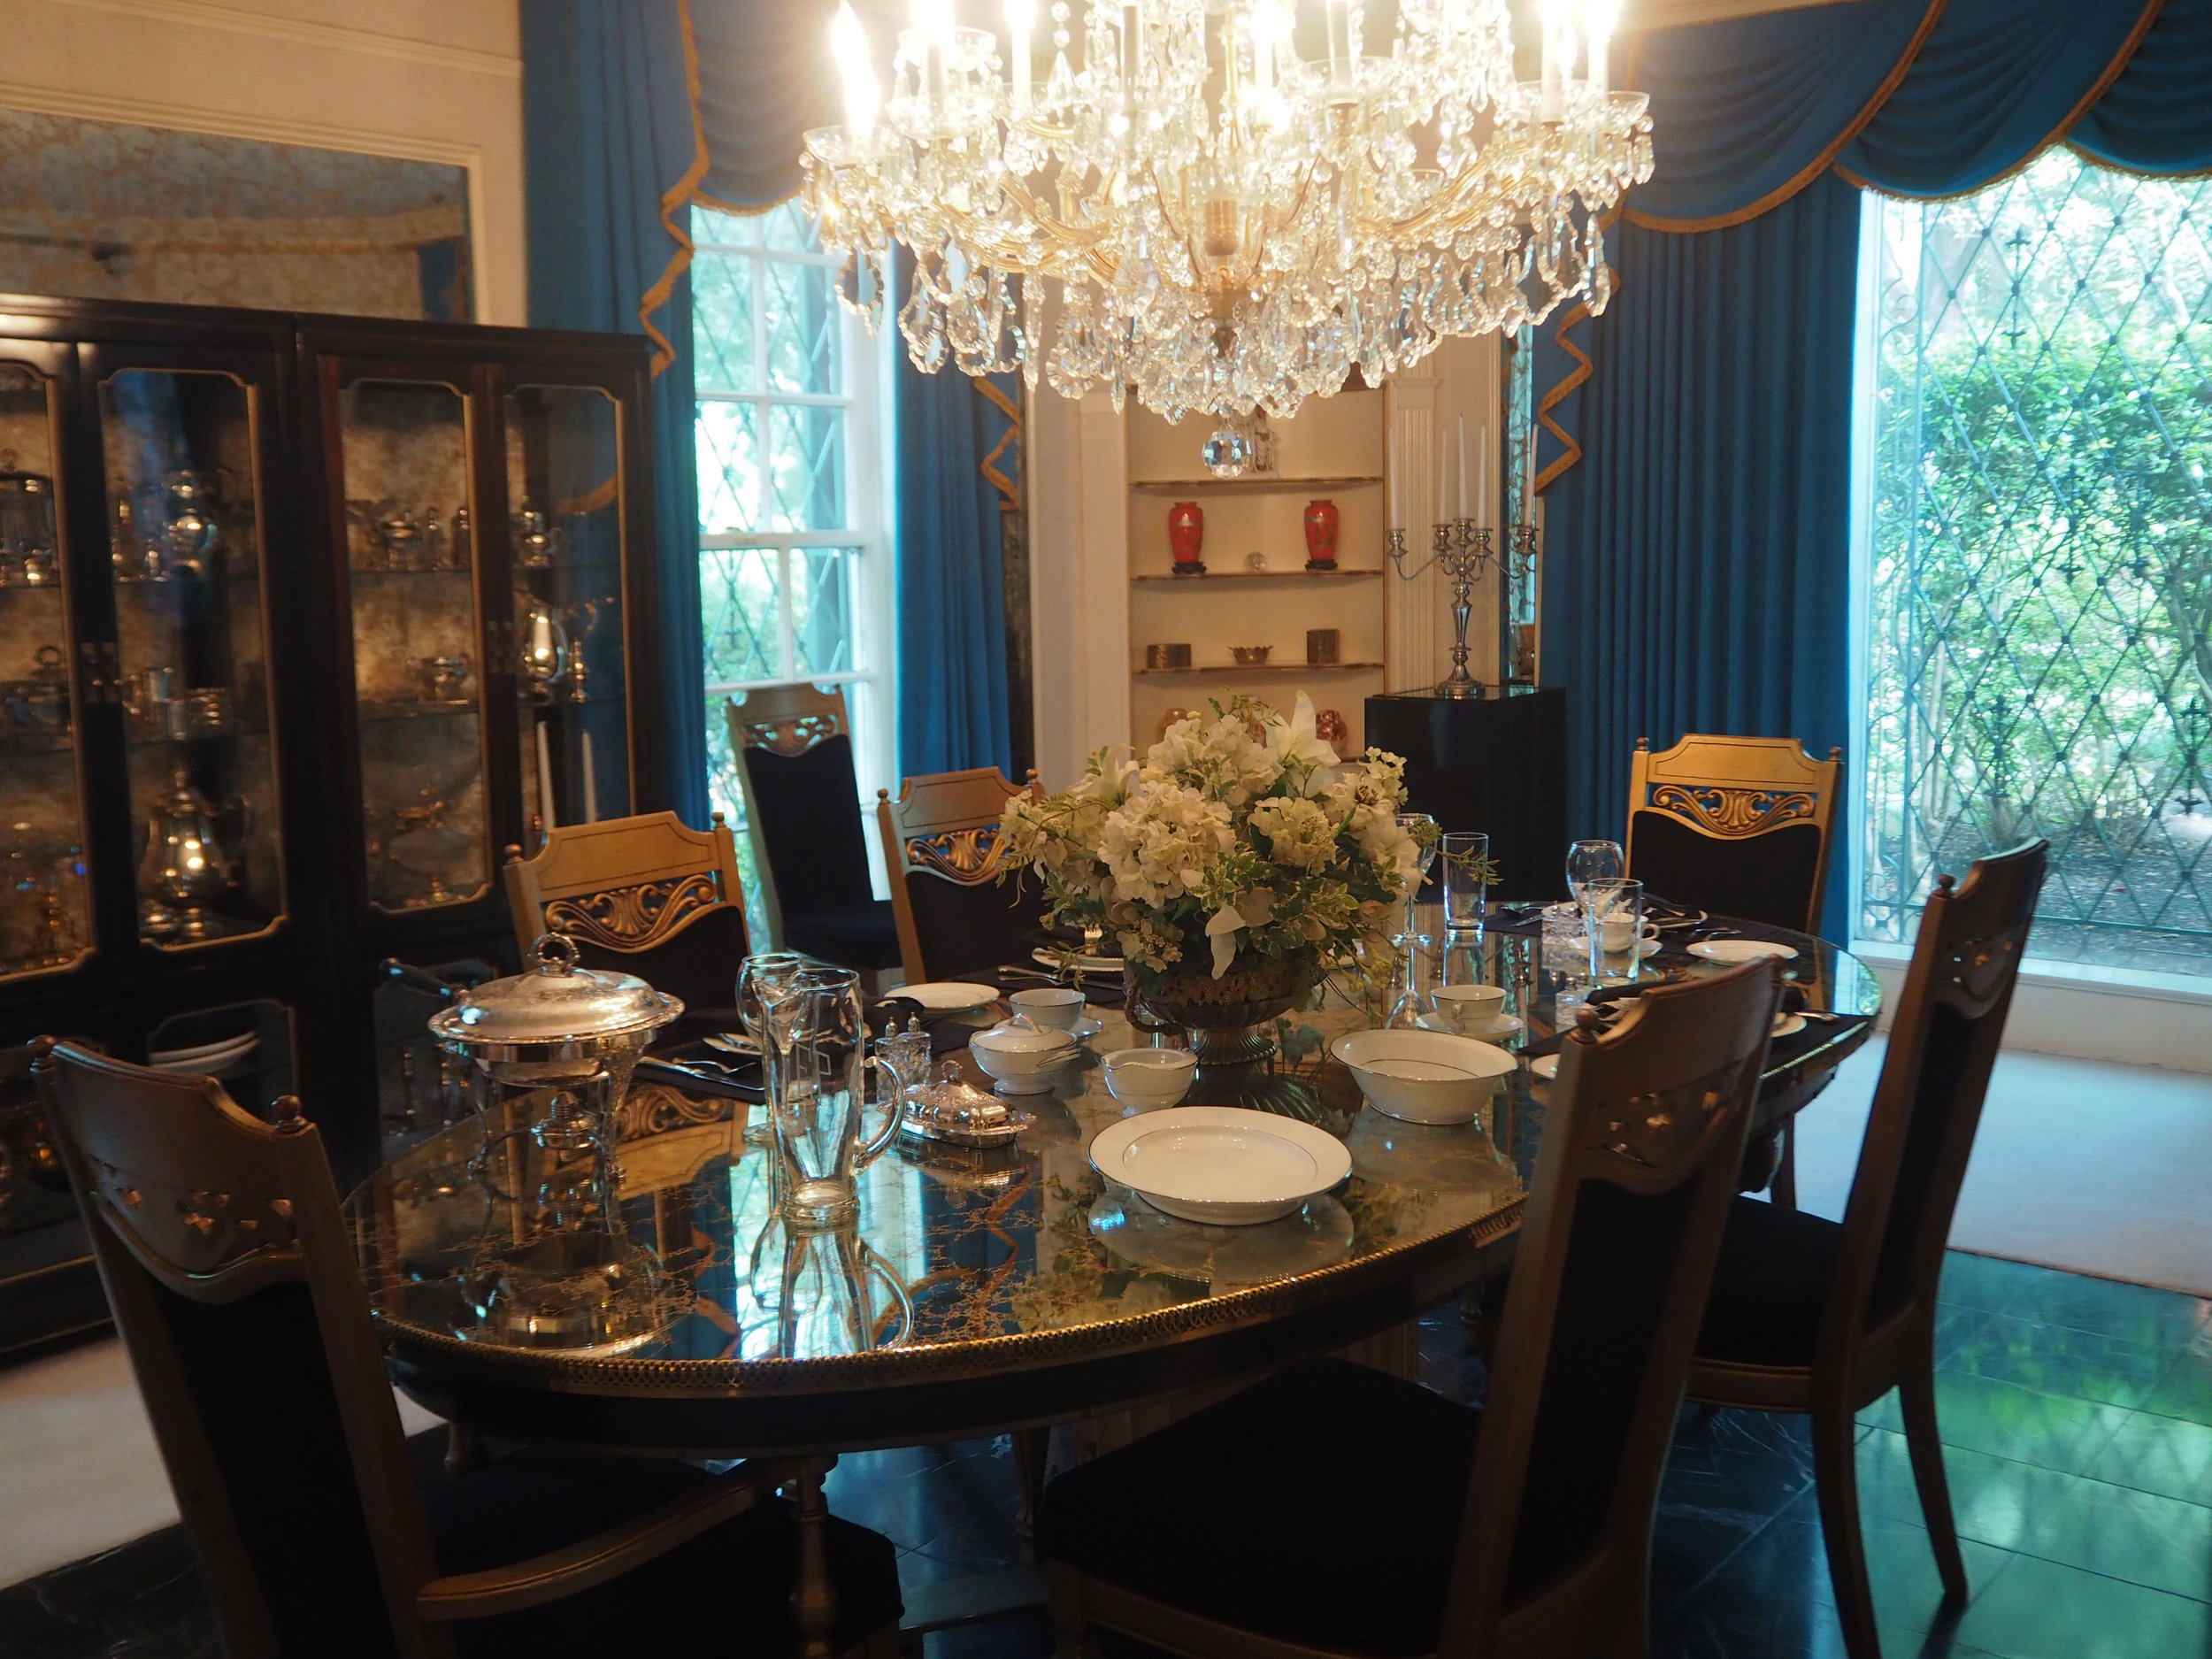 The grand dining room inside Elvis Presley's Graceland. To see more pics, click on the photo.